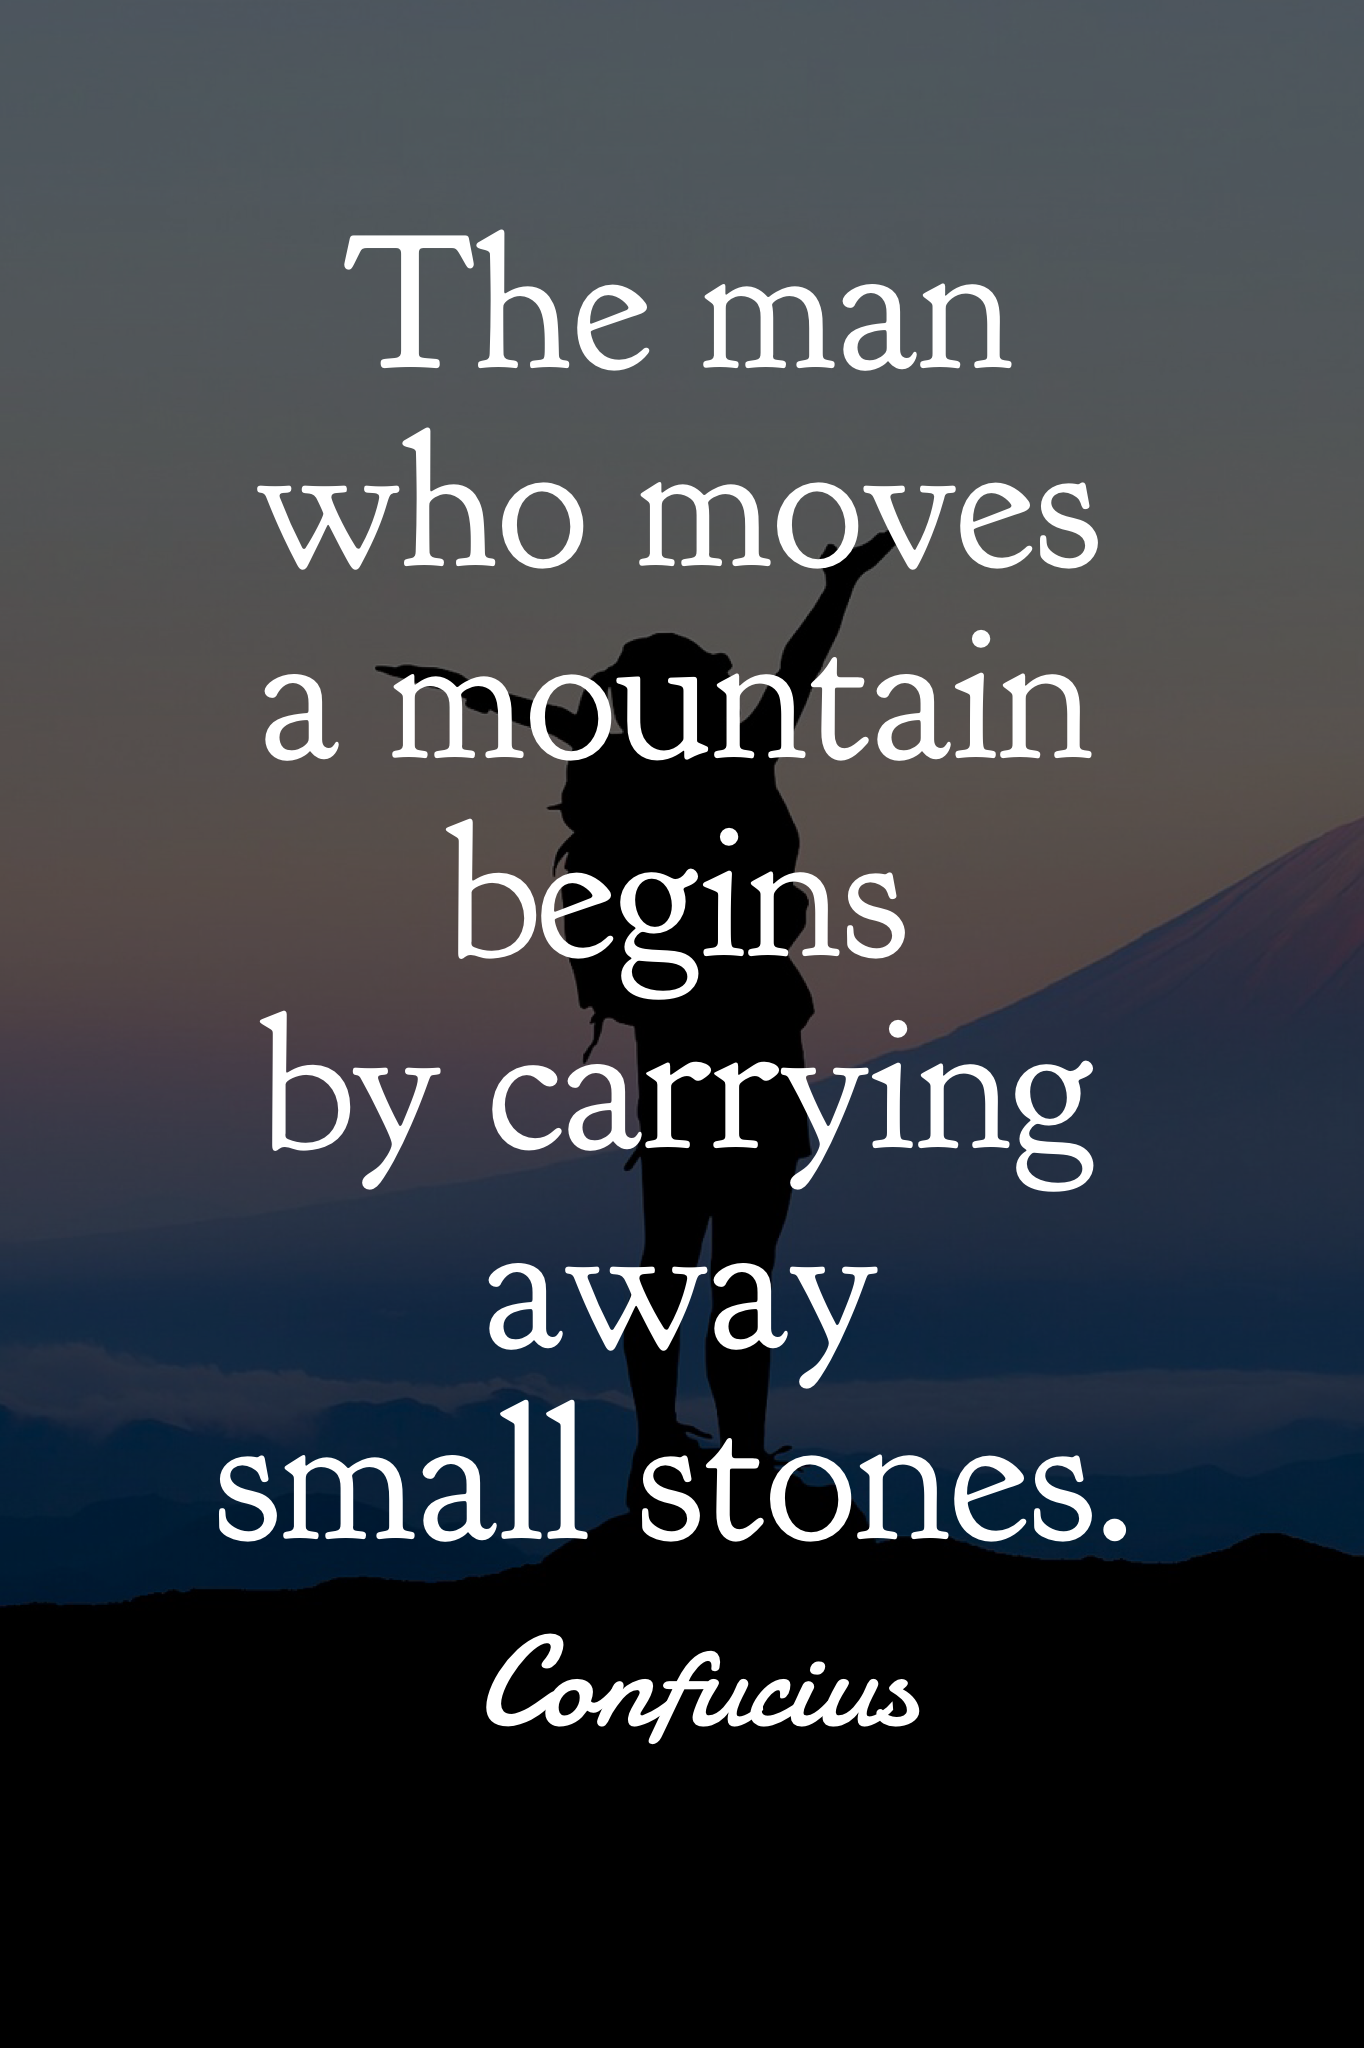 Famous Confucius Quotes 20 Famous Confucius Quotes That Will Inspire You  Confucius Quotes .